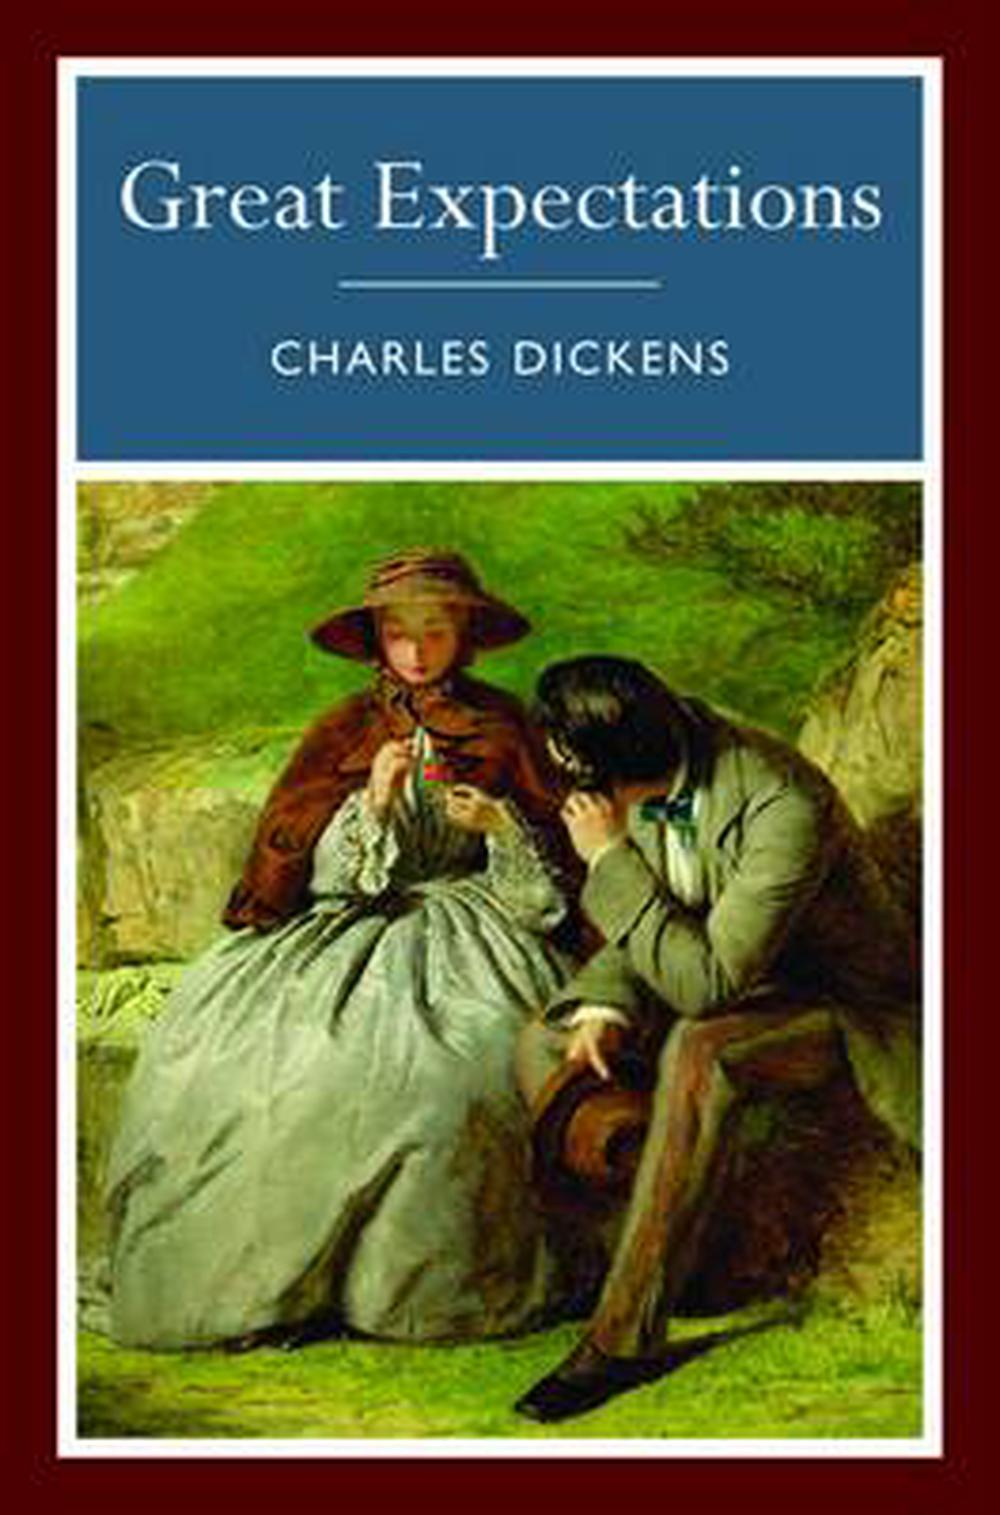 an analysis of imprisonment in great expectations by charles dickens Free essay on realism and romanticism in great expectations by charles dickens and a structuralist analysis by yogi emirza available totally free at echeatcom, the largest free essay community.